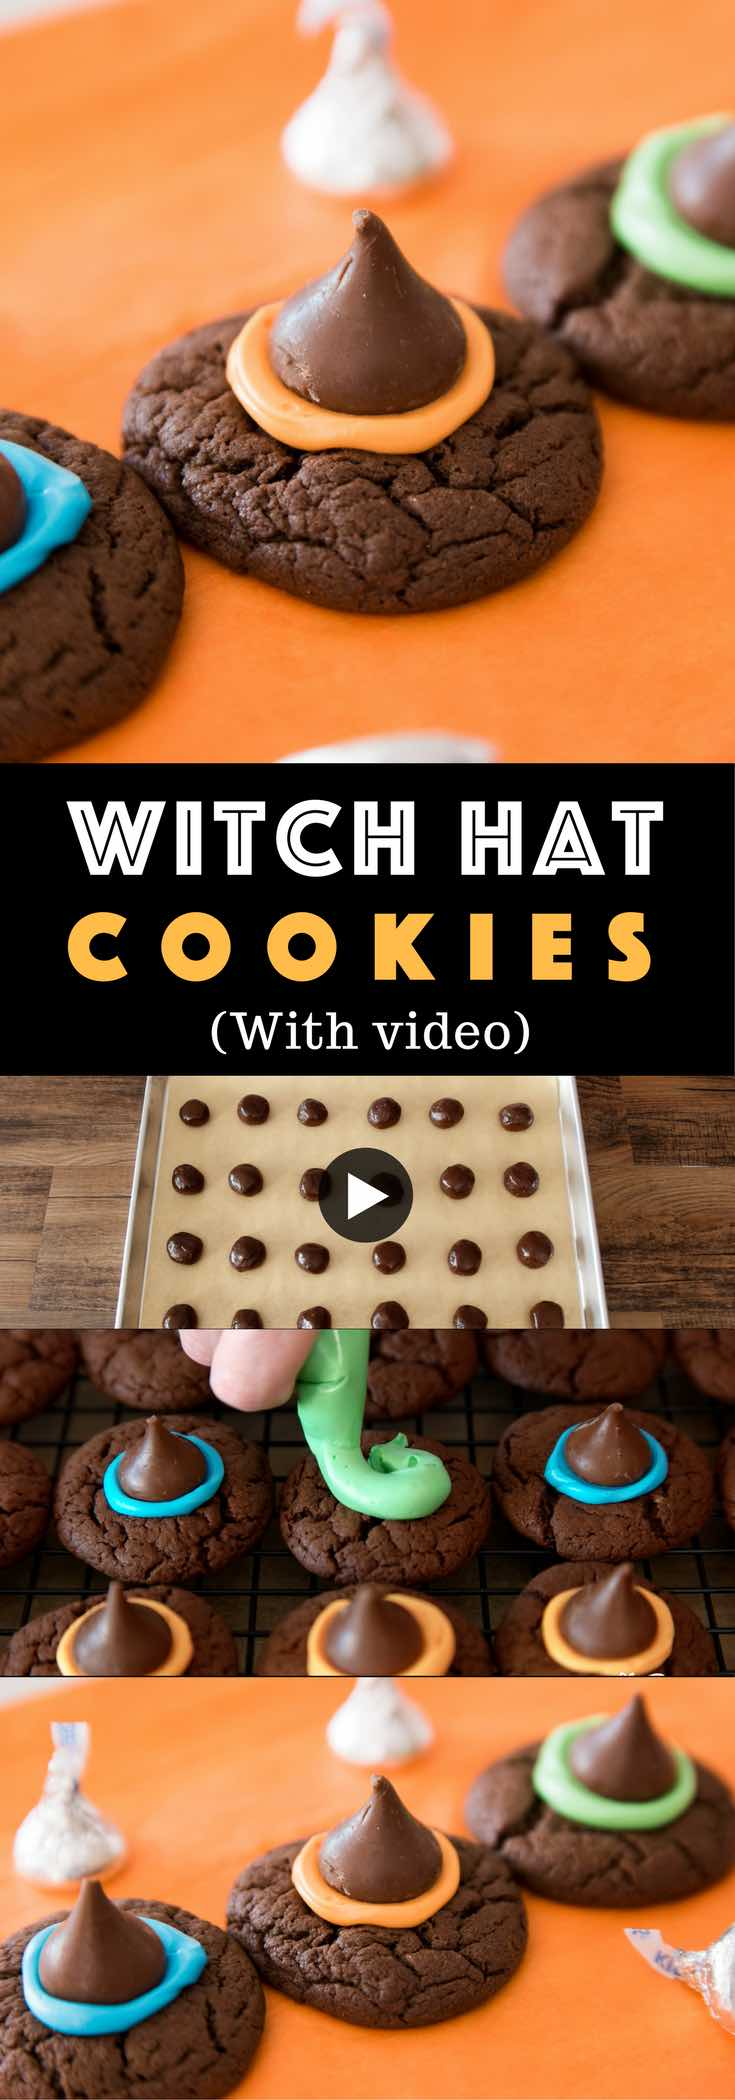 Fun and delicious Witch Hat Cookies are one of the best Halloween recipes. It makes a perfect Halloween party treat. Fun recipe to make with kids. Dessert, Party Food. Vegetarian. Fun and yummy Halloween recipe. Video recipe. | Tipbuzz.com